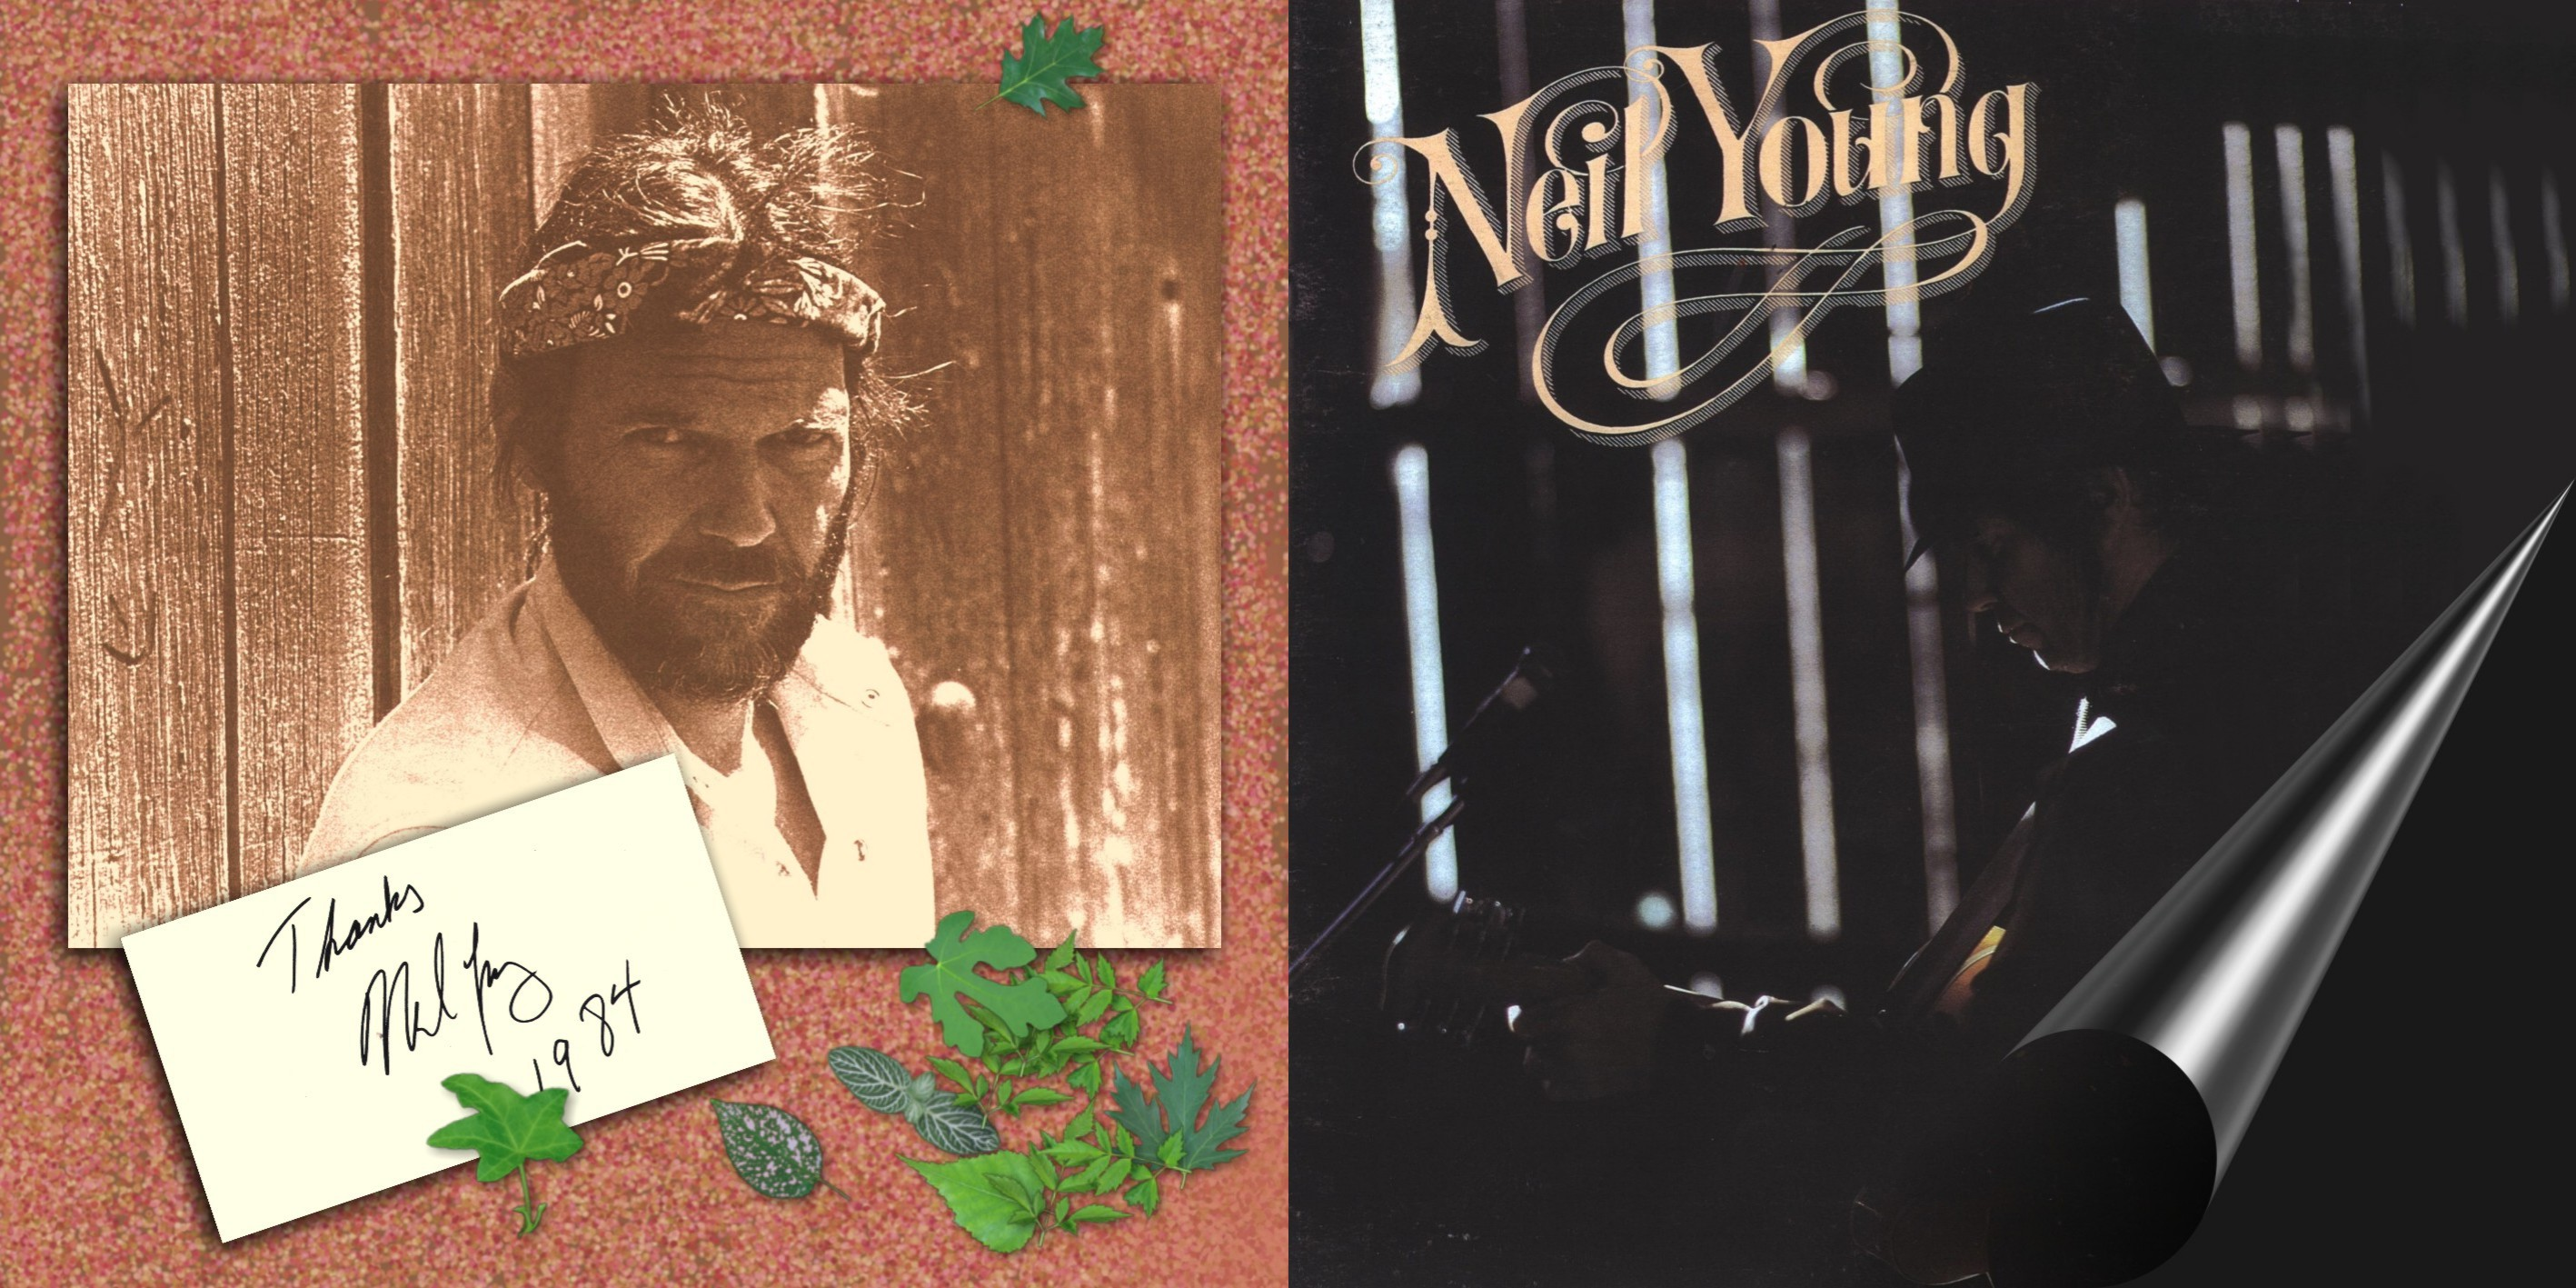 NeilYoung1984InternationalHarvesterTourCompilation (5).jpg